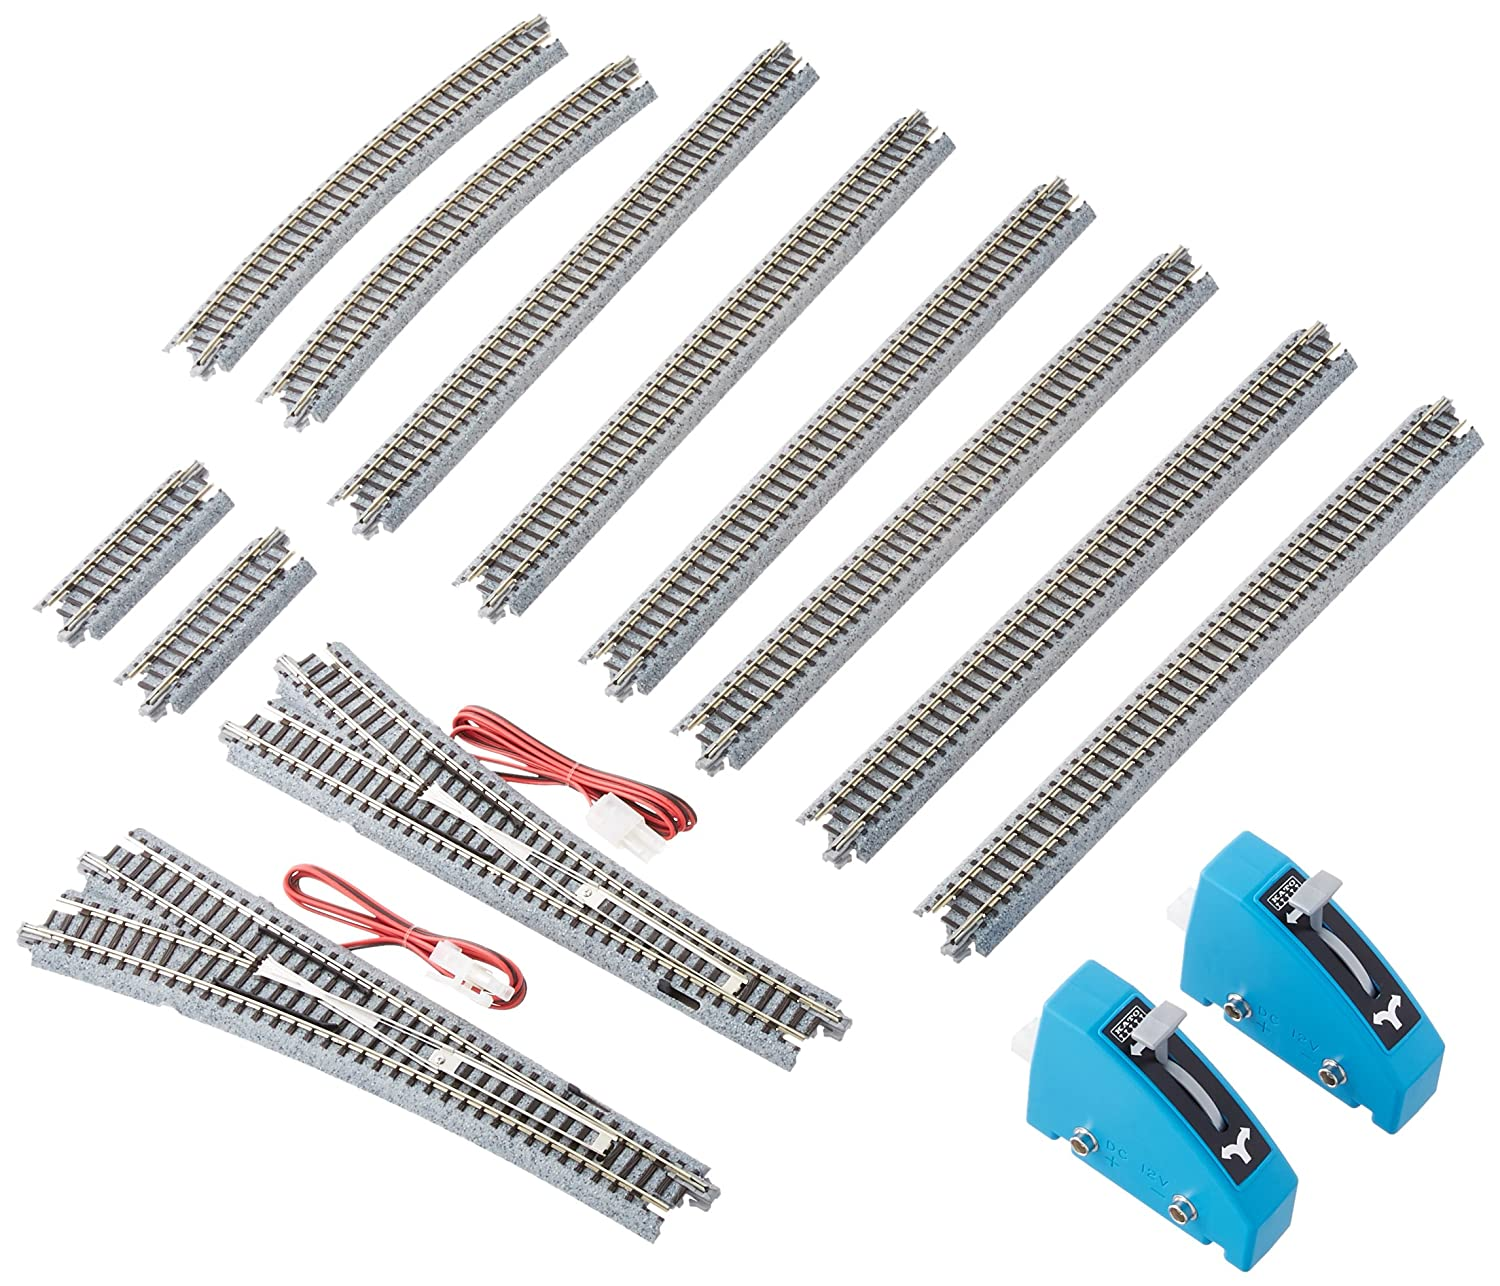 Kato Usa Model Train Products V1 Unitrack Mainline How To Wire A Switch Passing Siding Set Toys Games